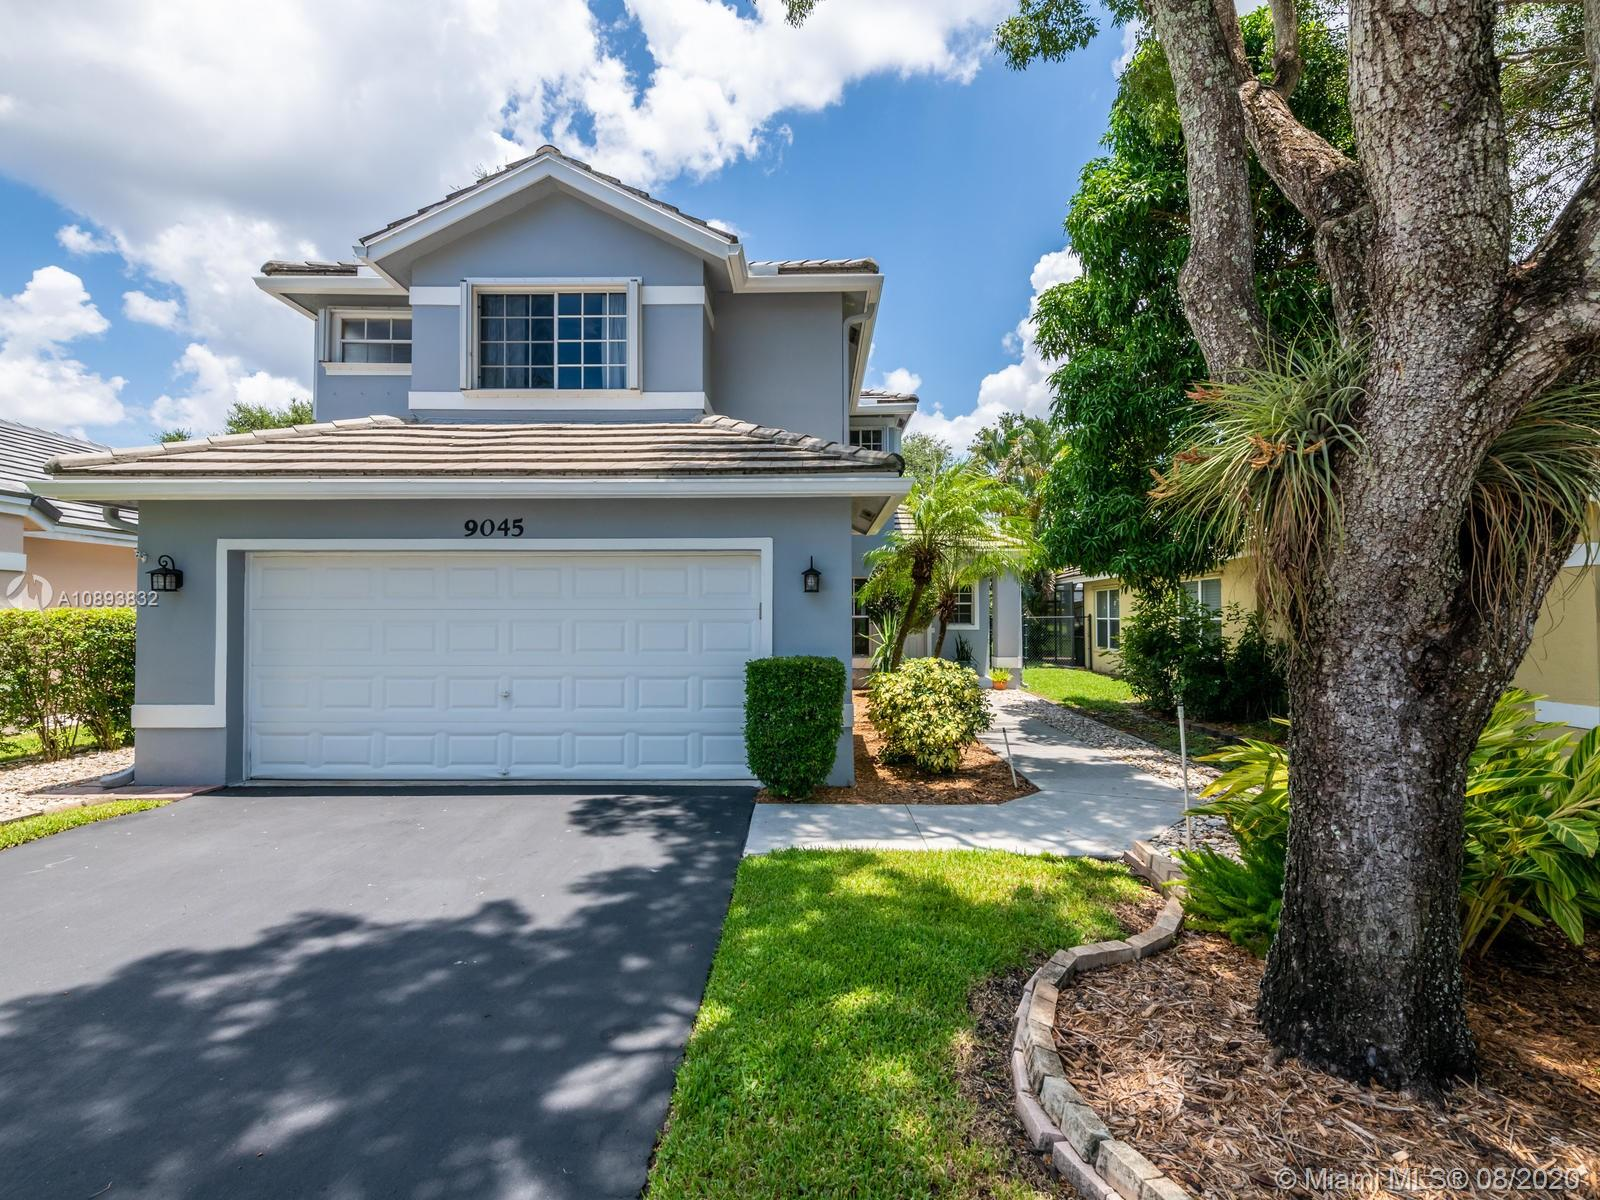 Forest Ridge - 9045 Lake Park Cir S, Davie, FL 33328